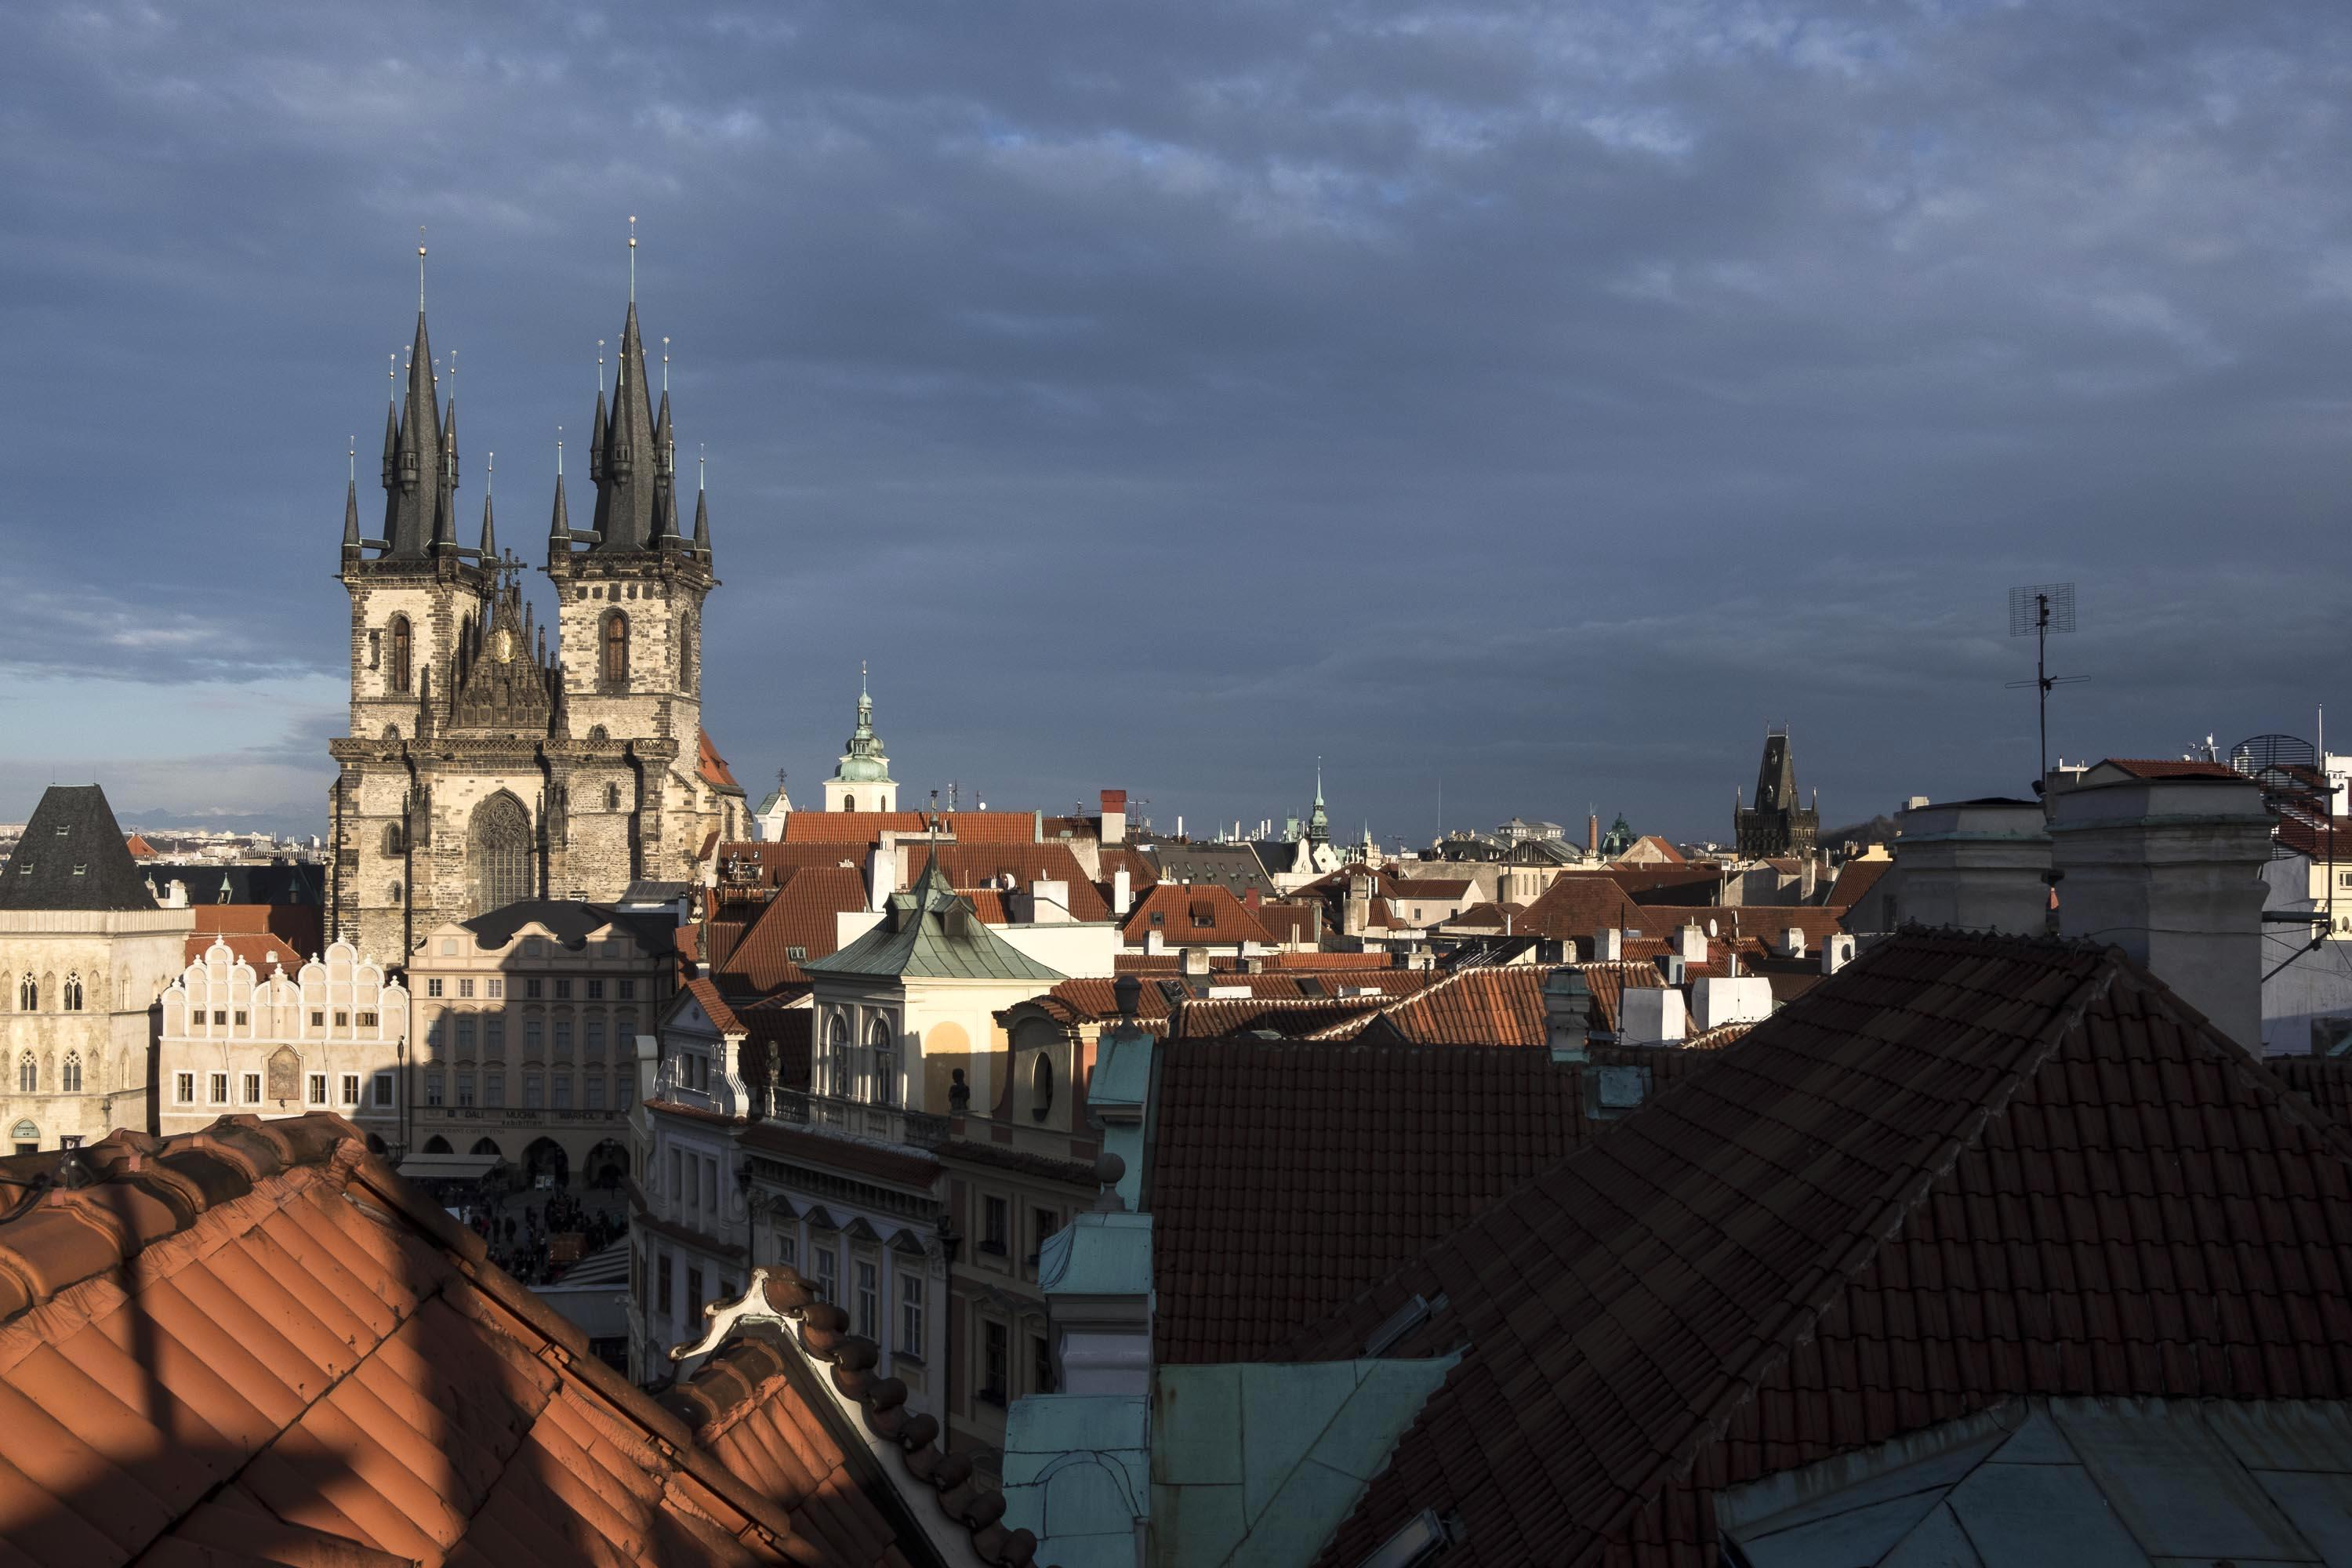 Restaurant prague cz travel journey voyage roof top bar view